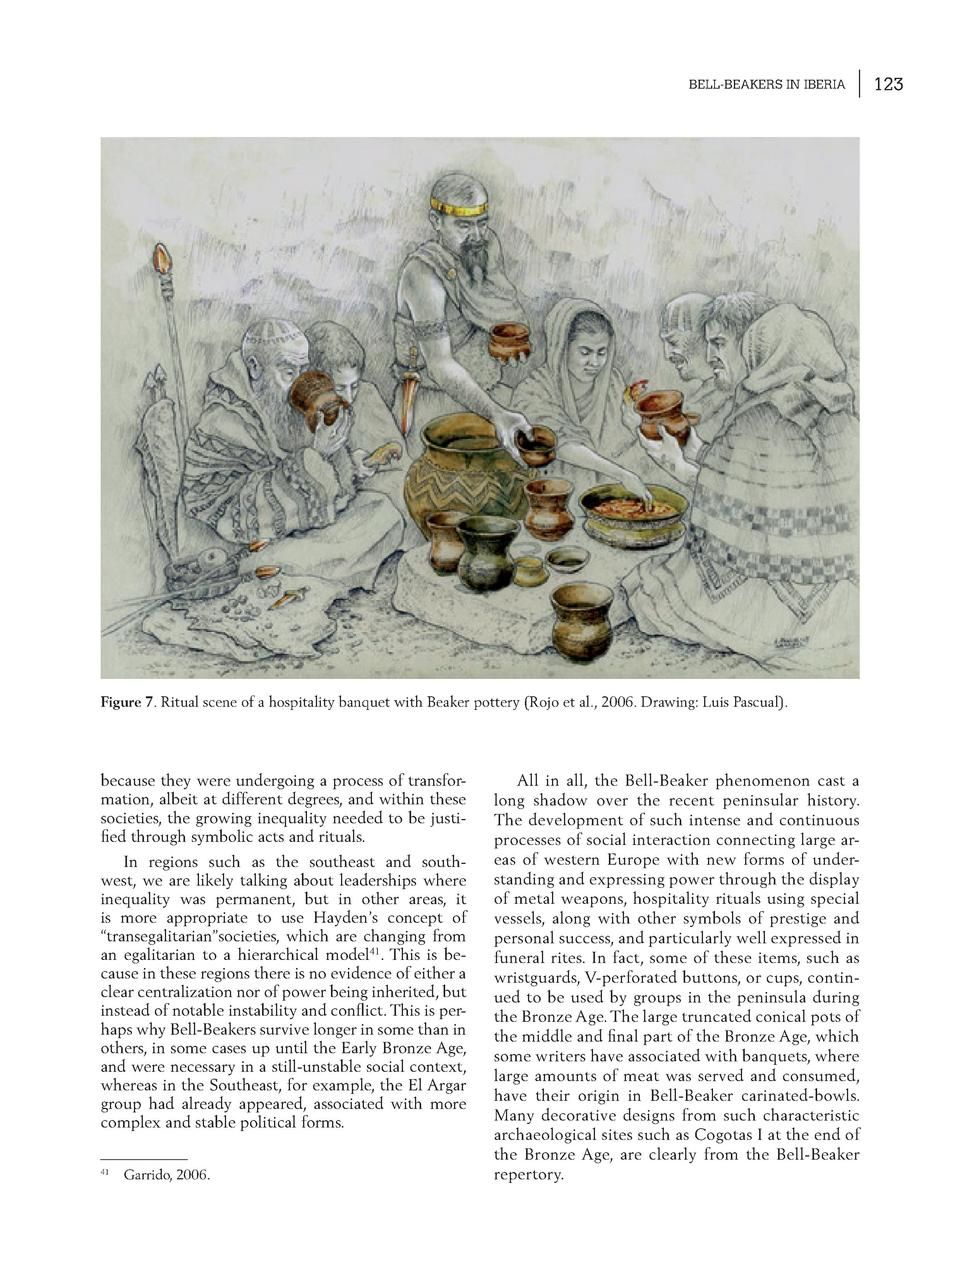 BELL-BEAKERS IN IBERIA  Figure 7. Ritual scene of a hospitality banquet with Beaker pottery  Rojo et al., 2006. Drawing  L...